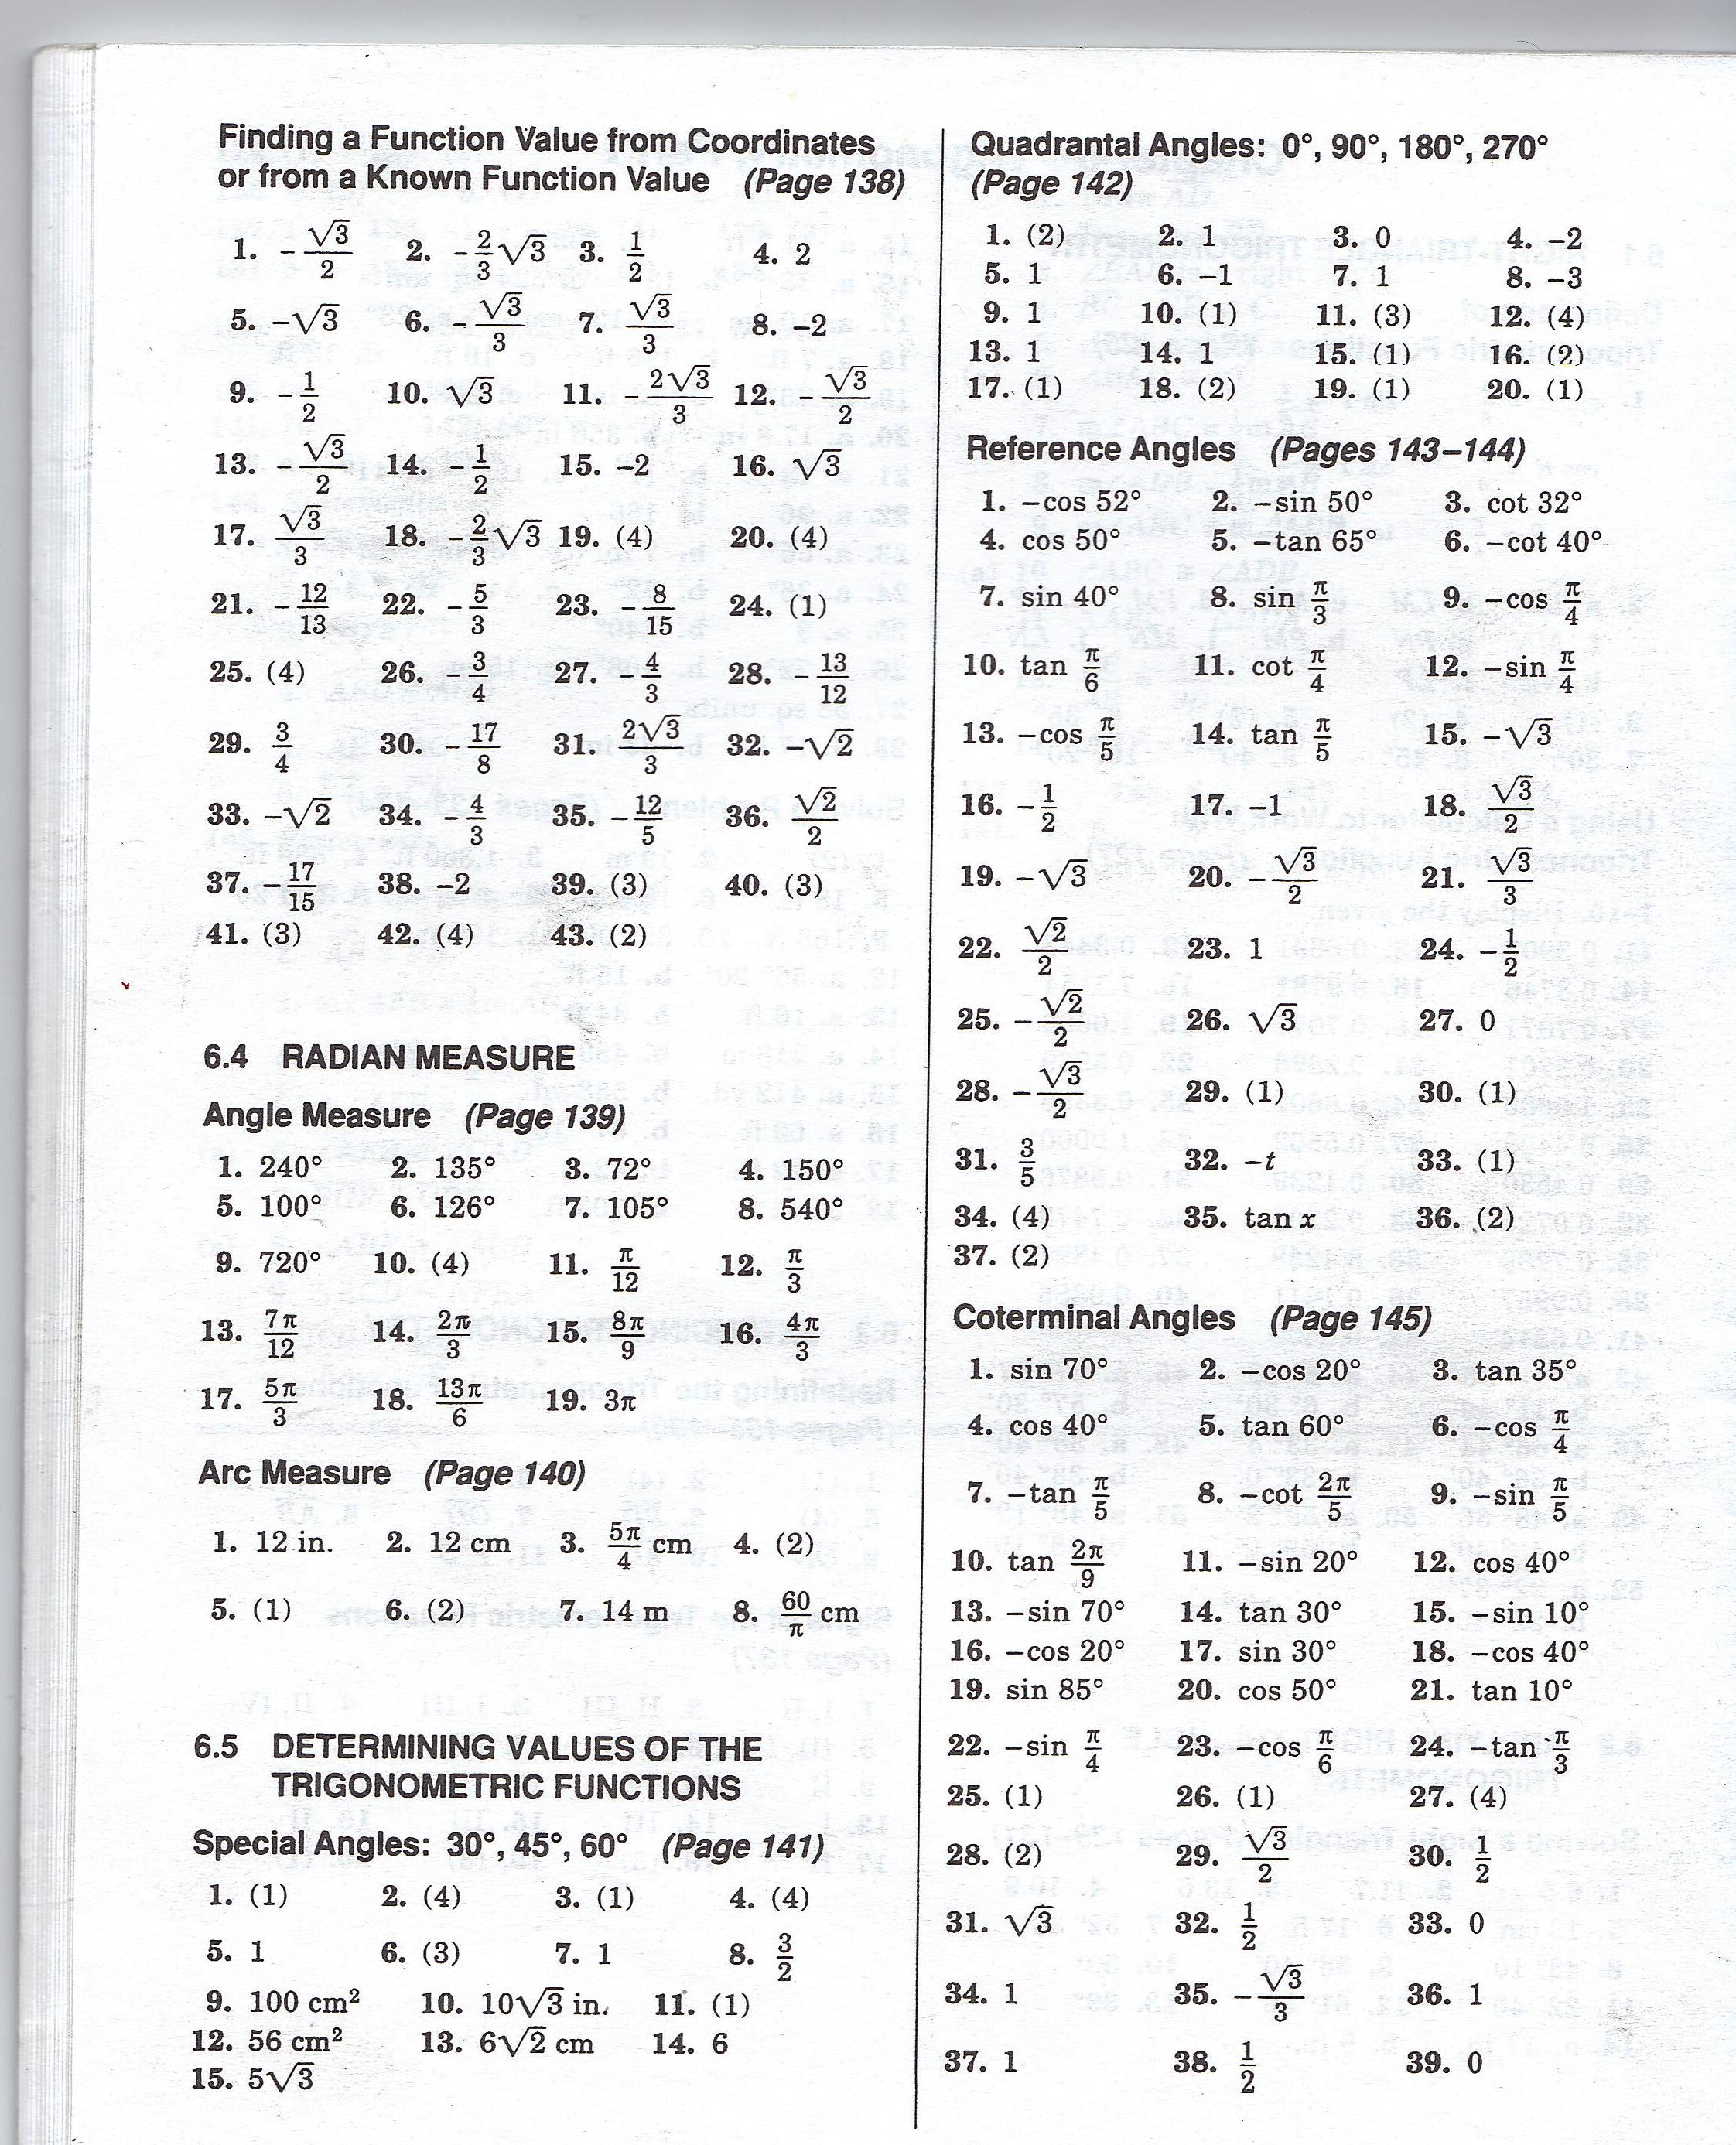 Printables Algebra 2 Trig Worksheets algebra 2 trig worksheets abitlikethis handout p142 145 answer key part a extending handout